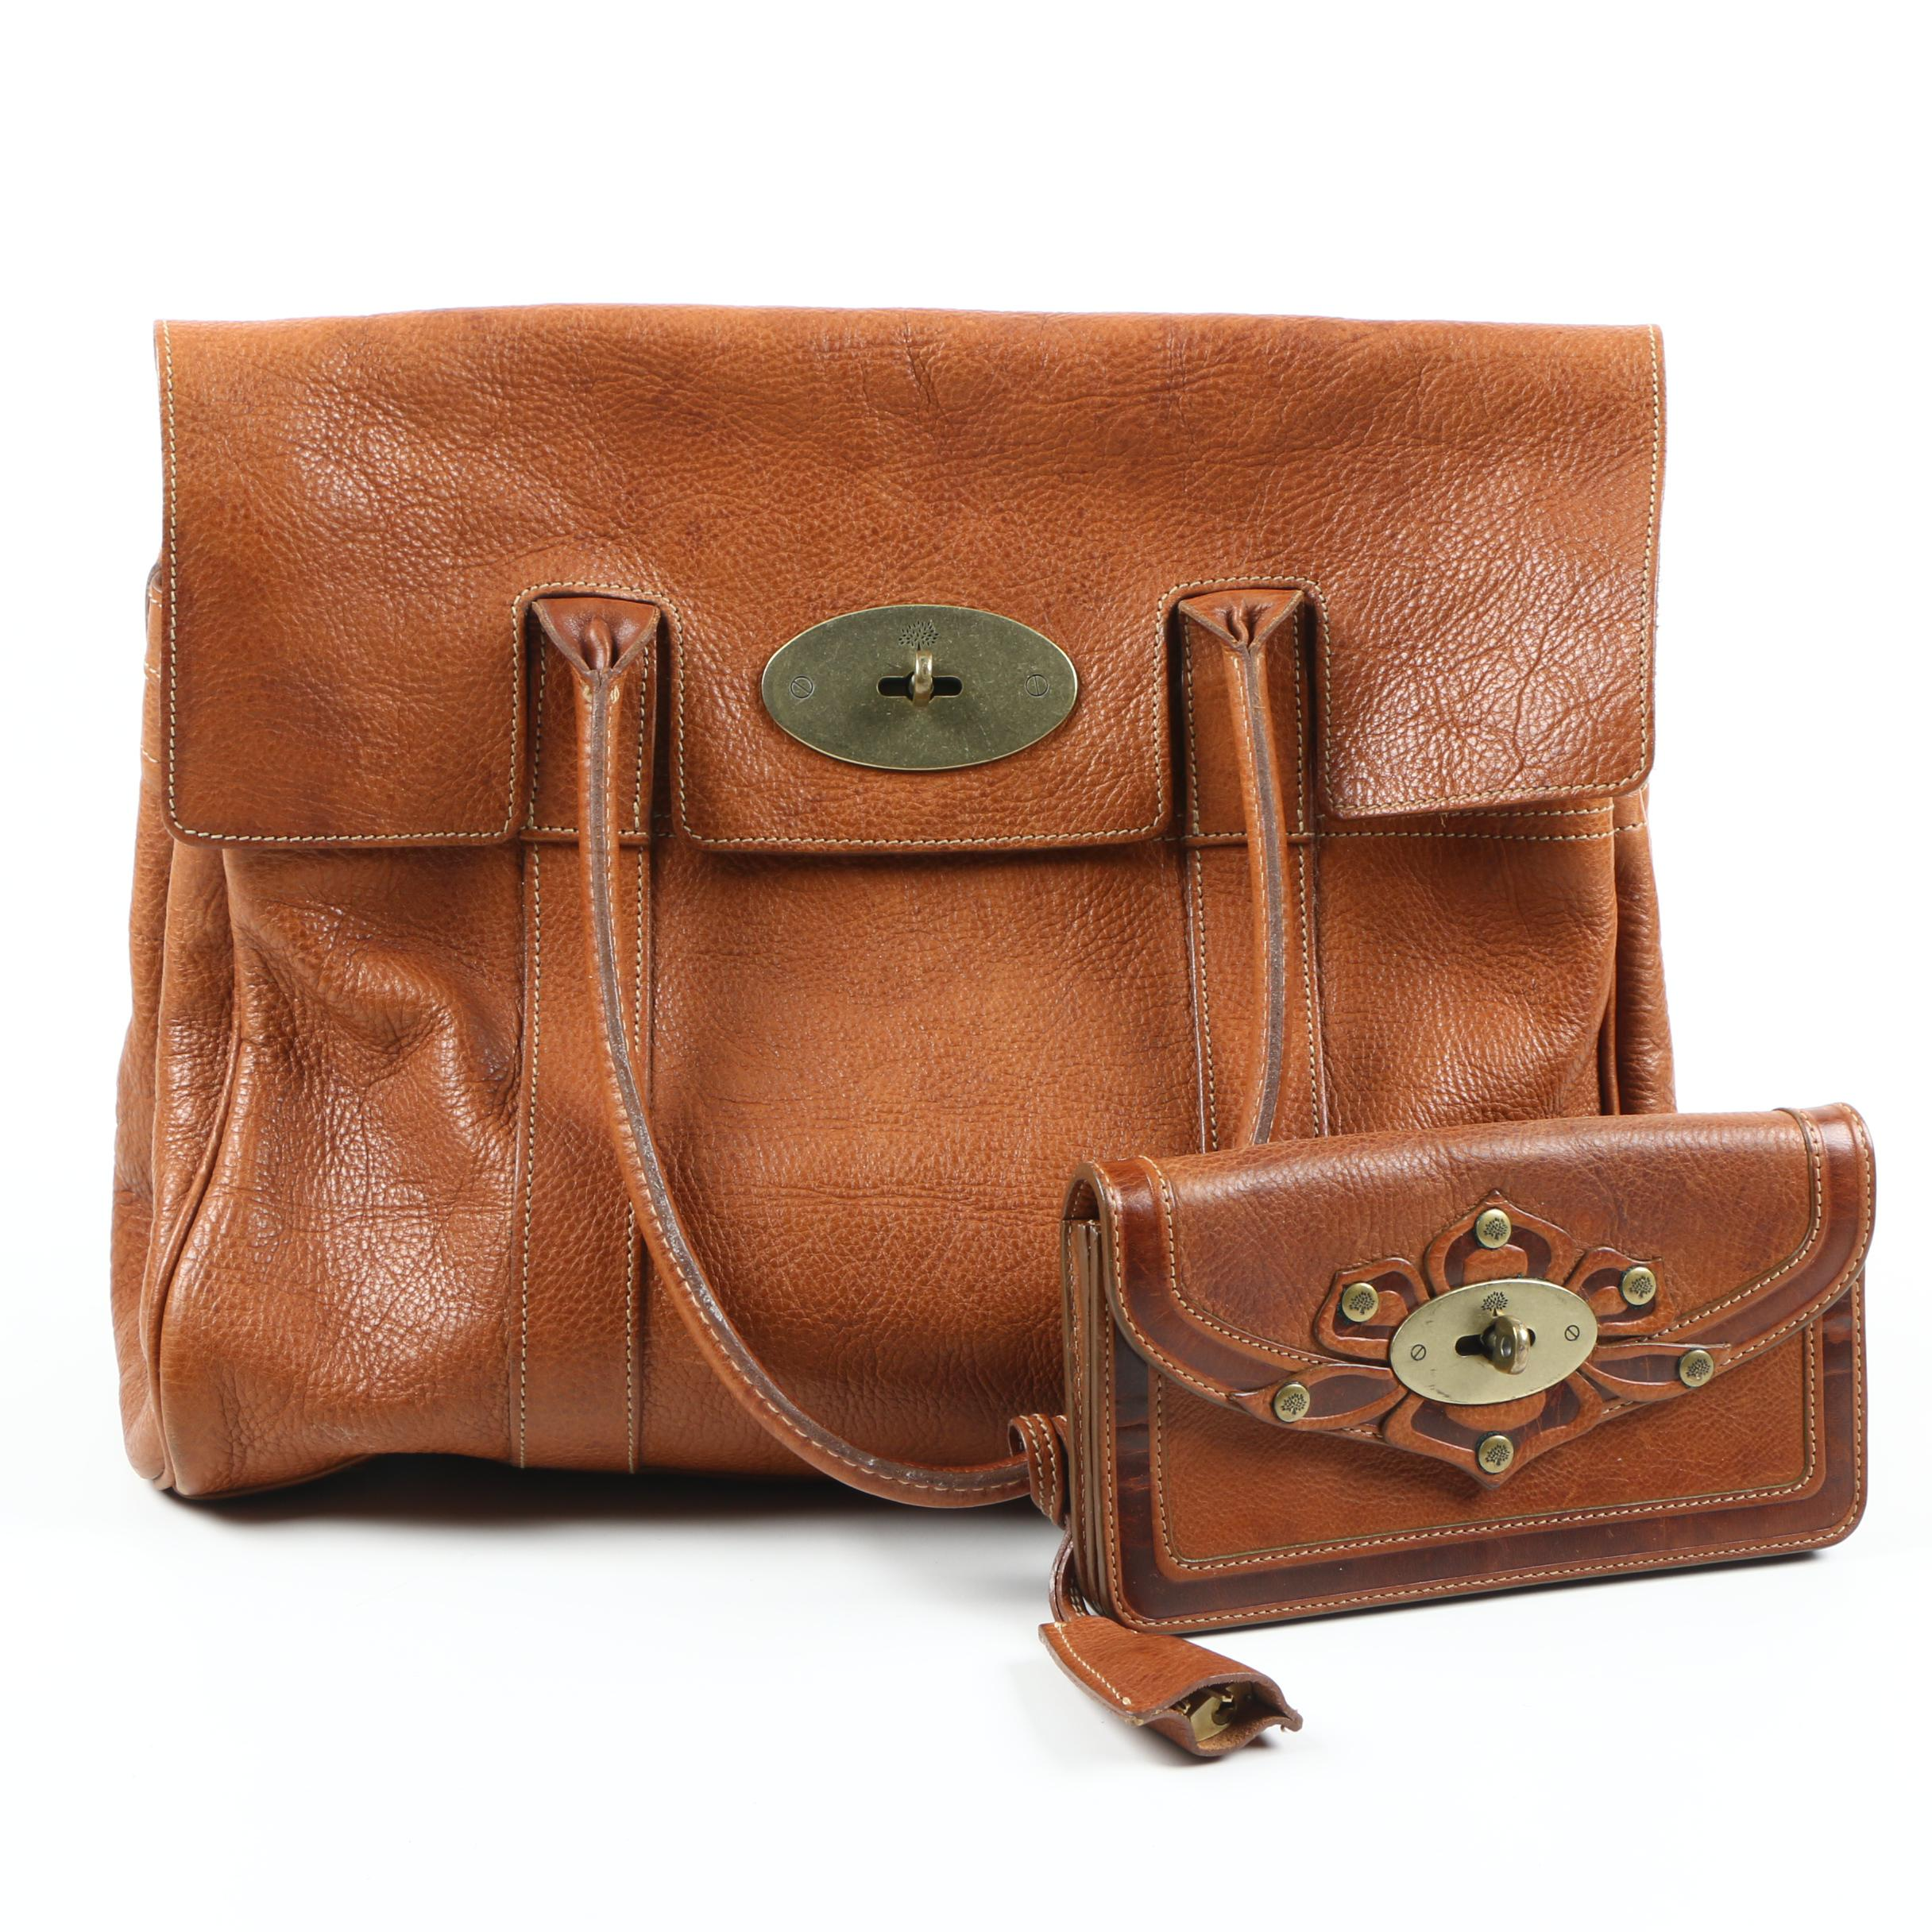 f48af80459a4 ... best handbag 2017 075d8 45422  shopping mulberry leather tote and  wallet 1f8be 822bc